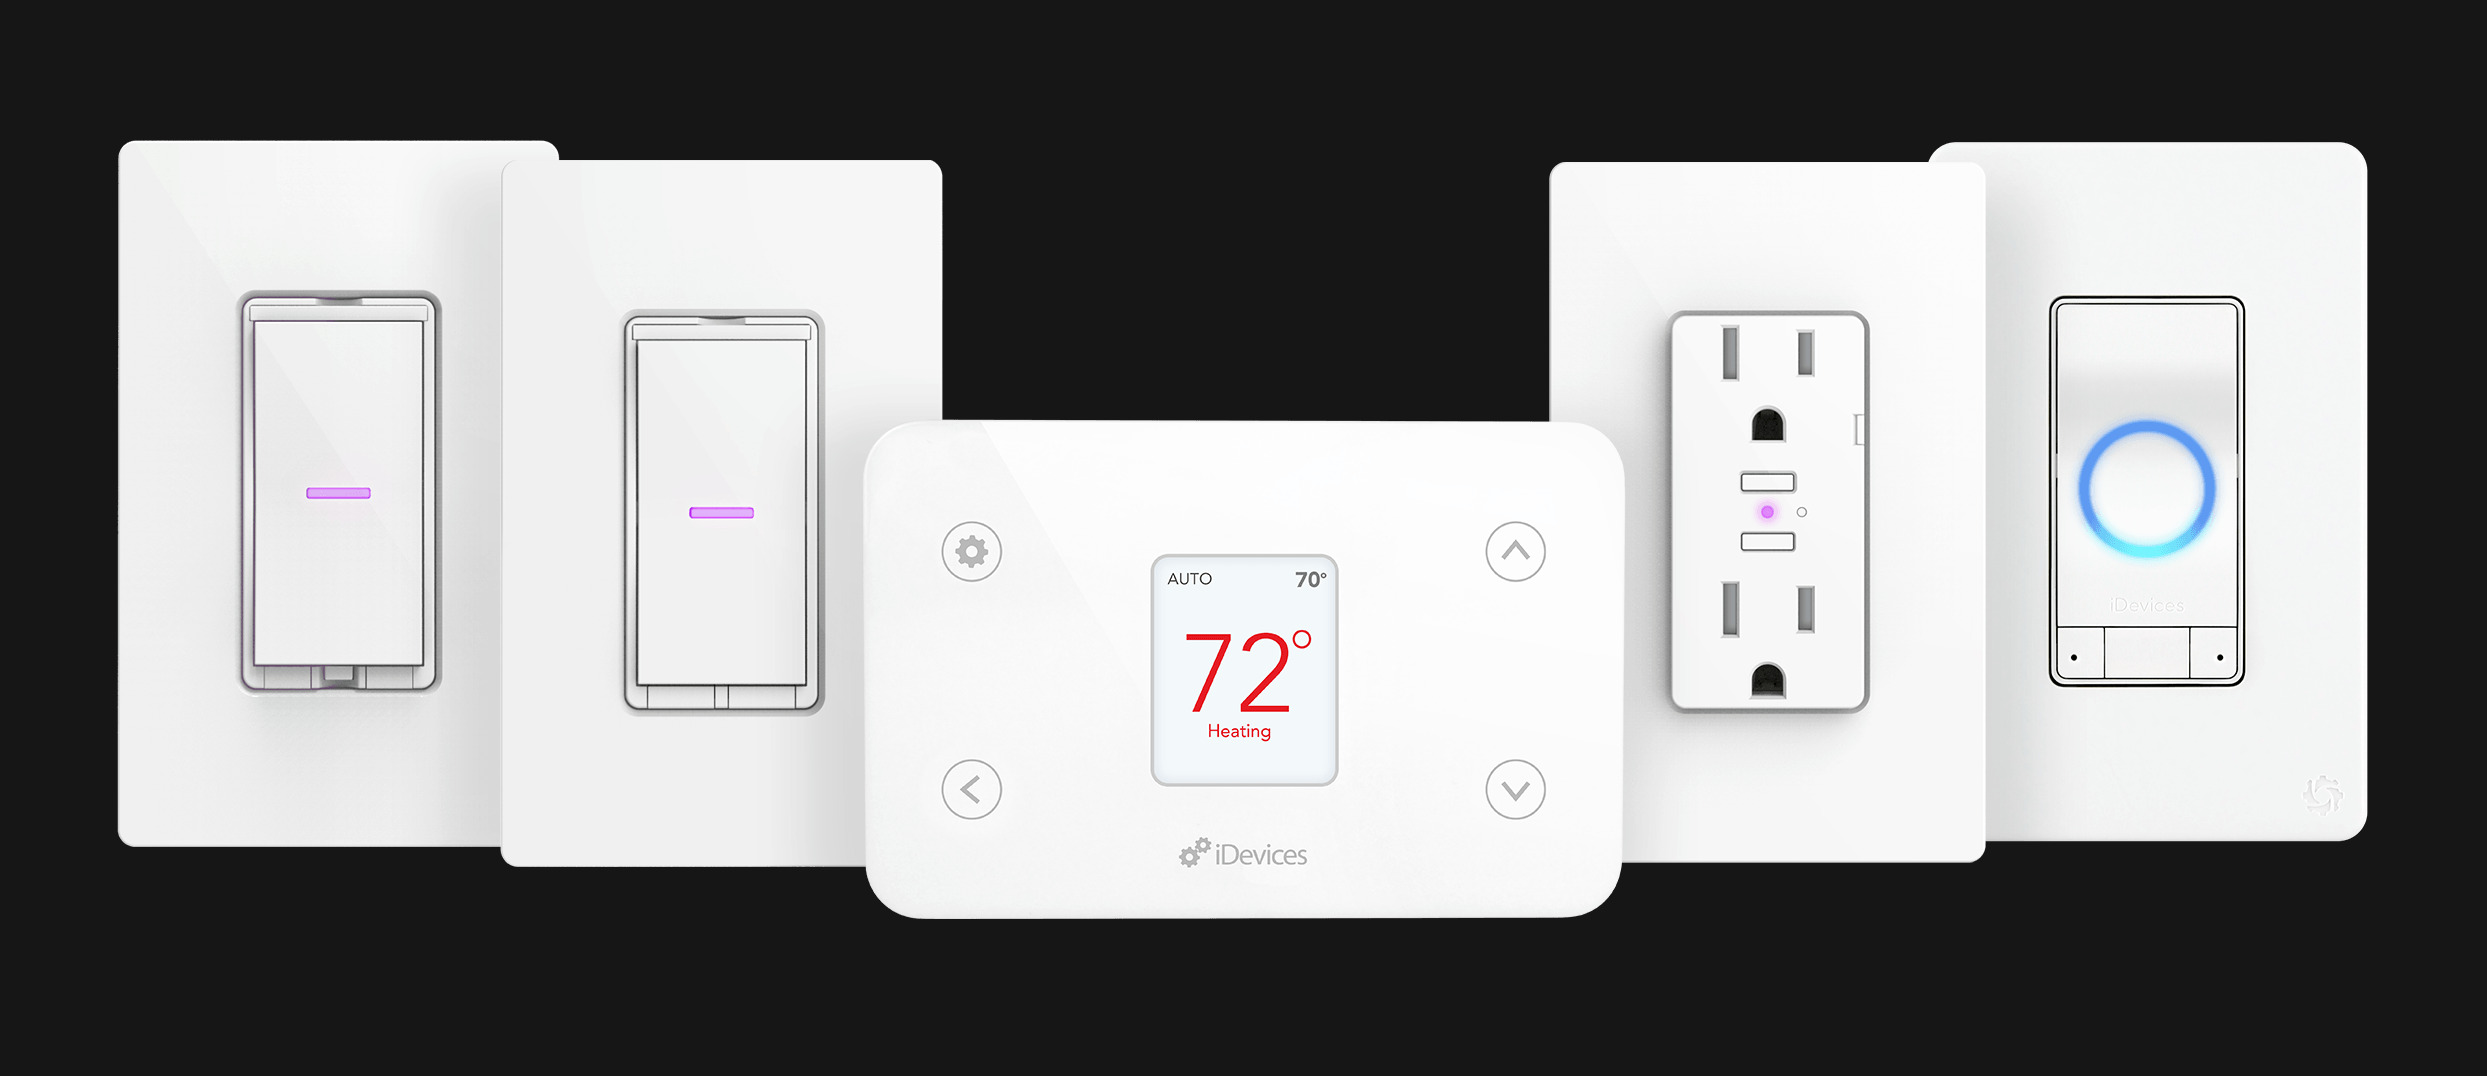 iDevices, Thermostat, Socket, Outdoor Switch, Switch, Wall Outlet, Wall Switch, Dimmer Switch, iShower, Connected, Voice Control, Wi-Fi, Smart Home, Amazon Alexa, Google Assistant, Apple HomeKit, iOS, Samsung, Siri